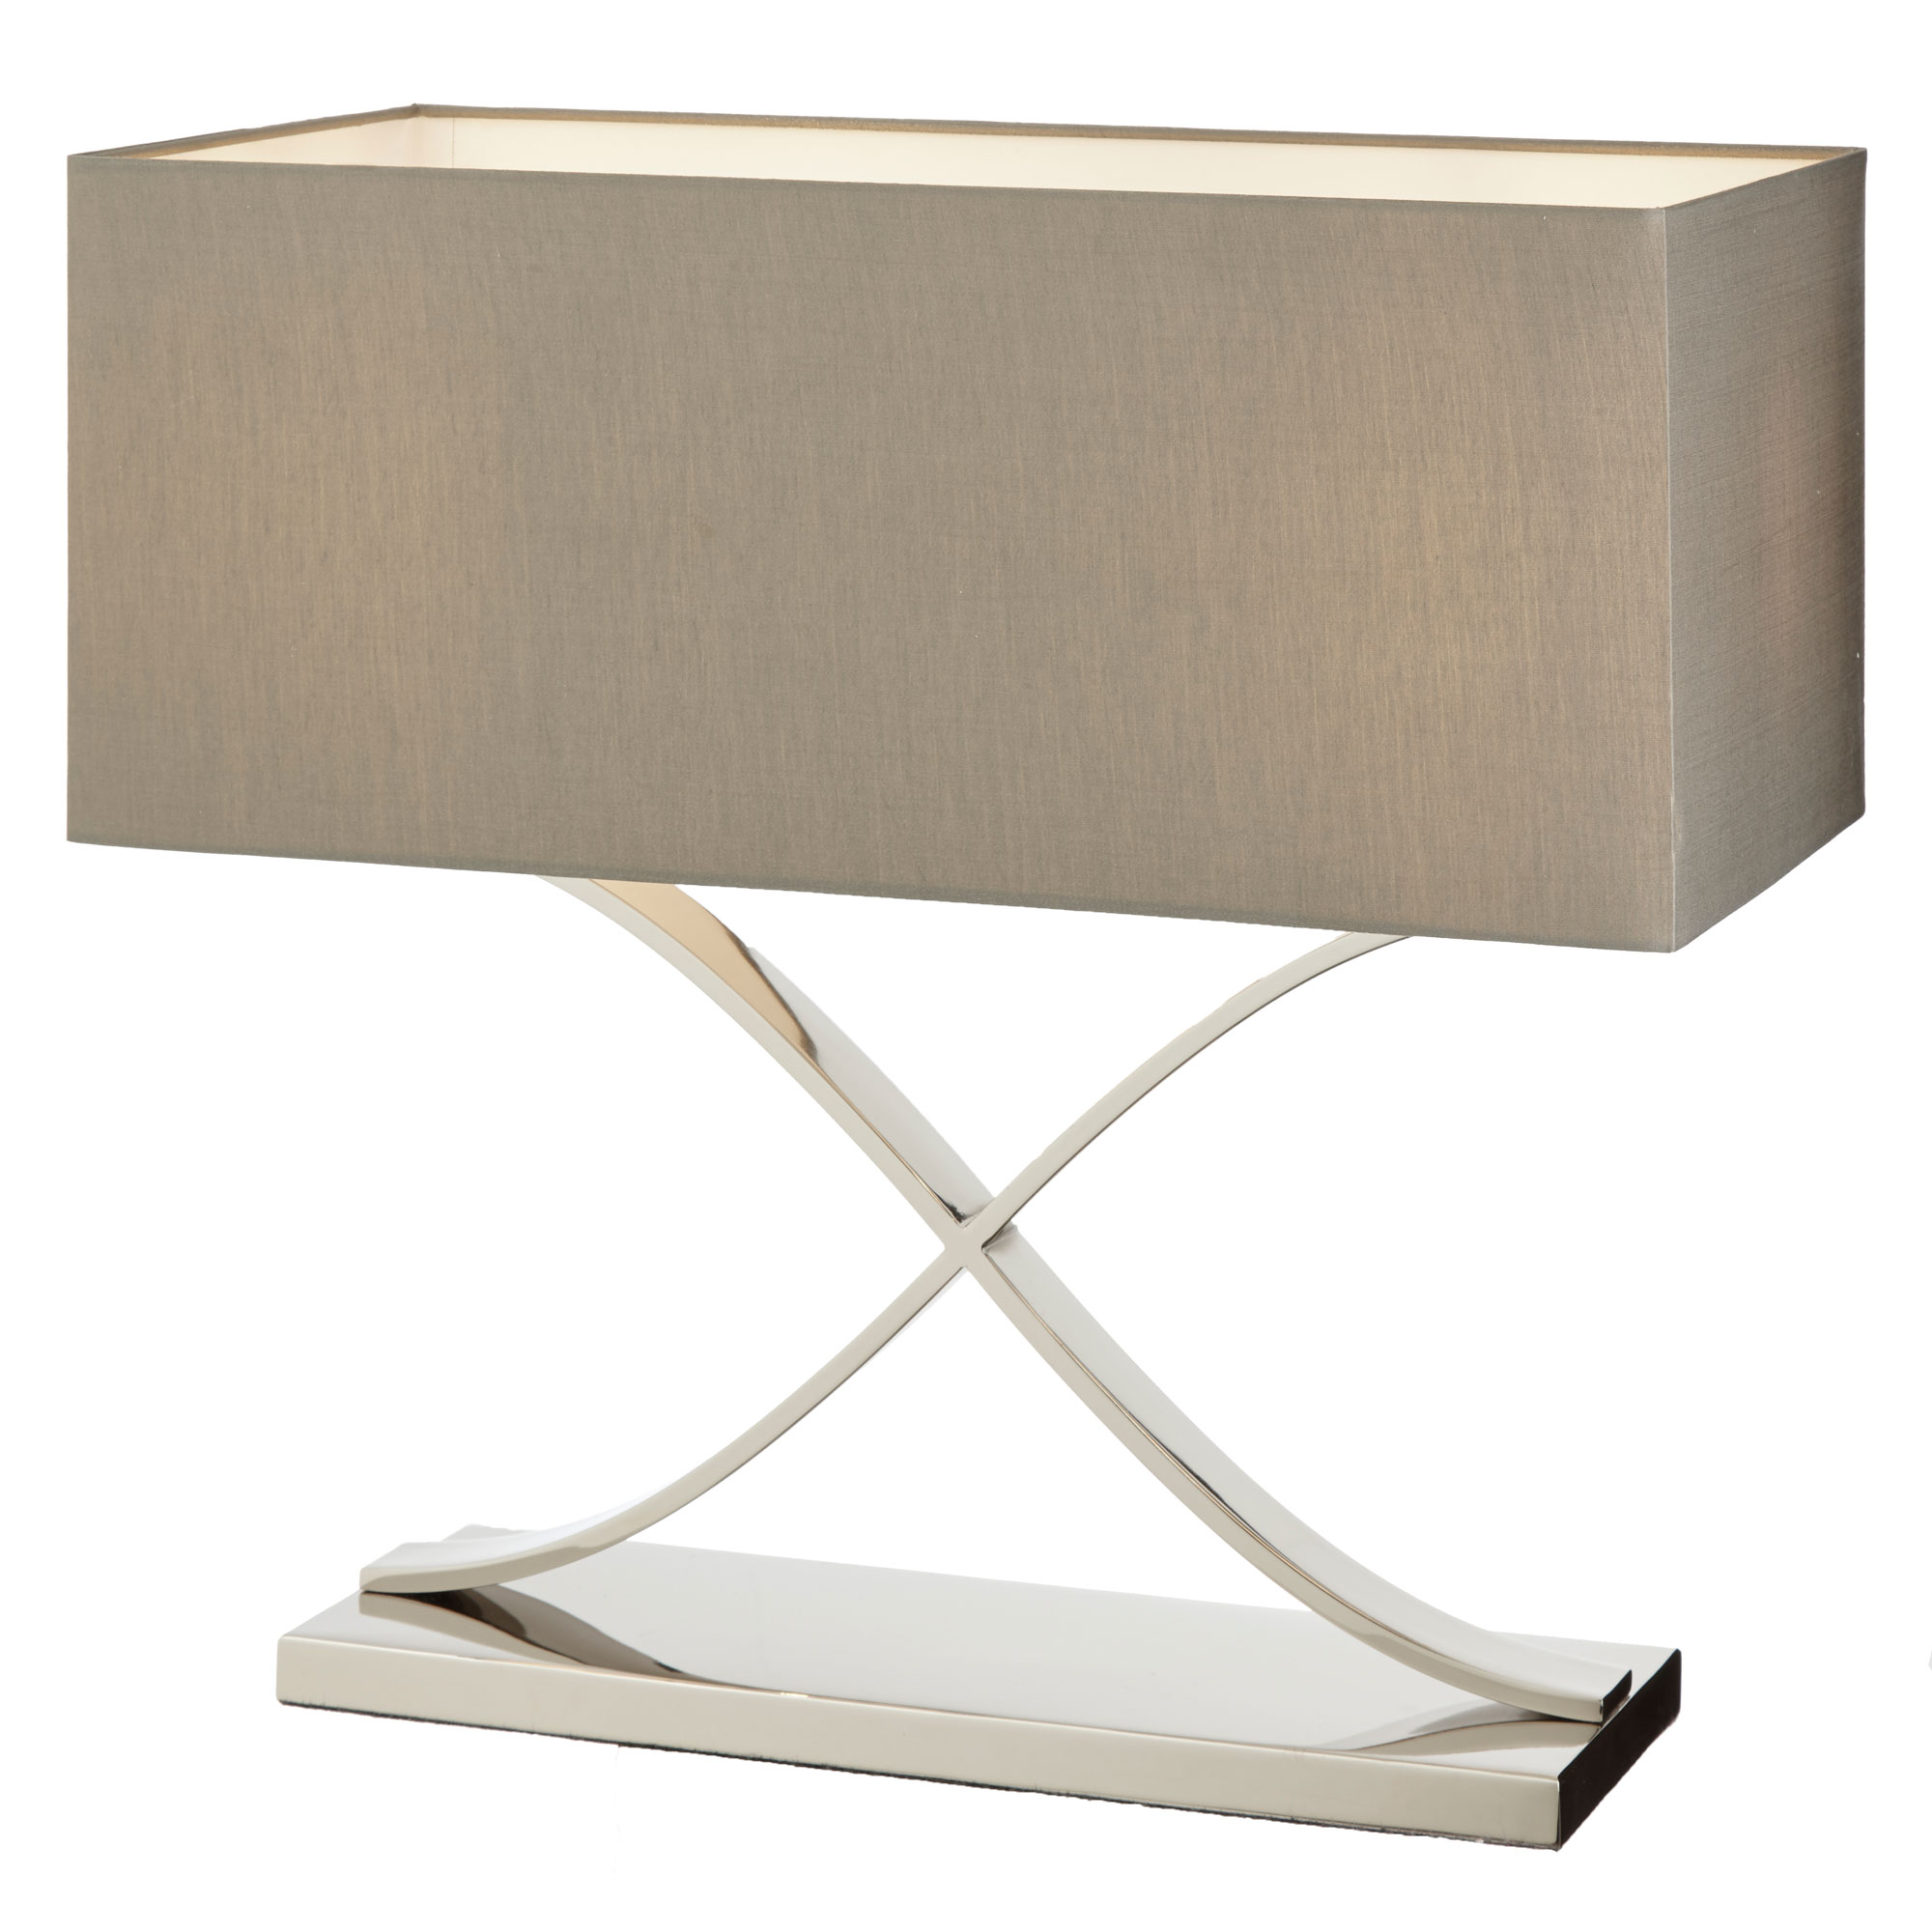 Byton Table Lamp with nickel finish RV Astley